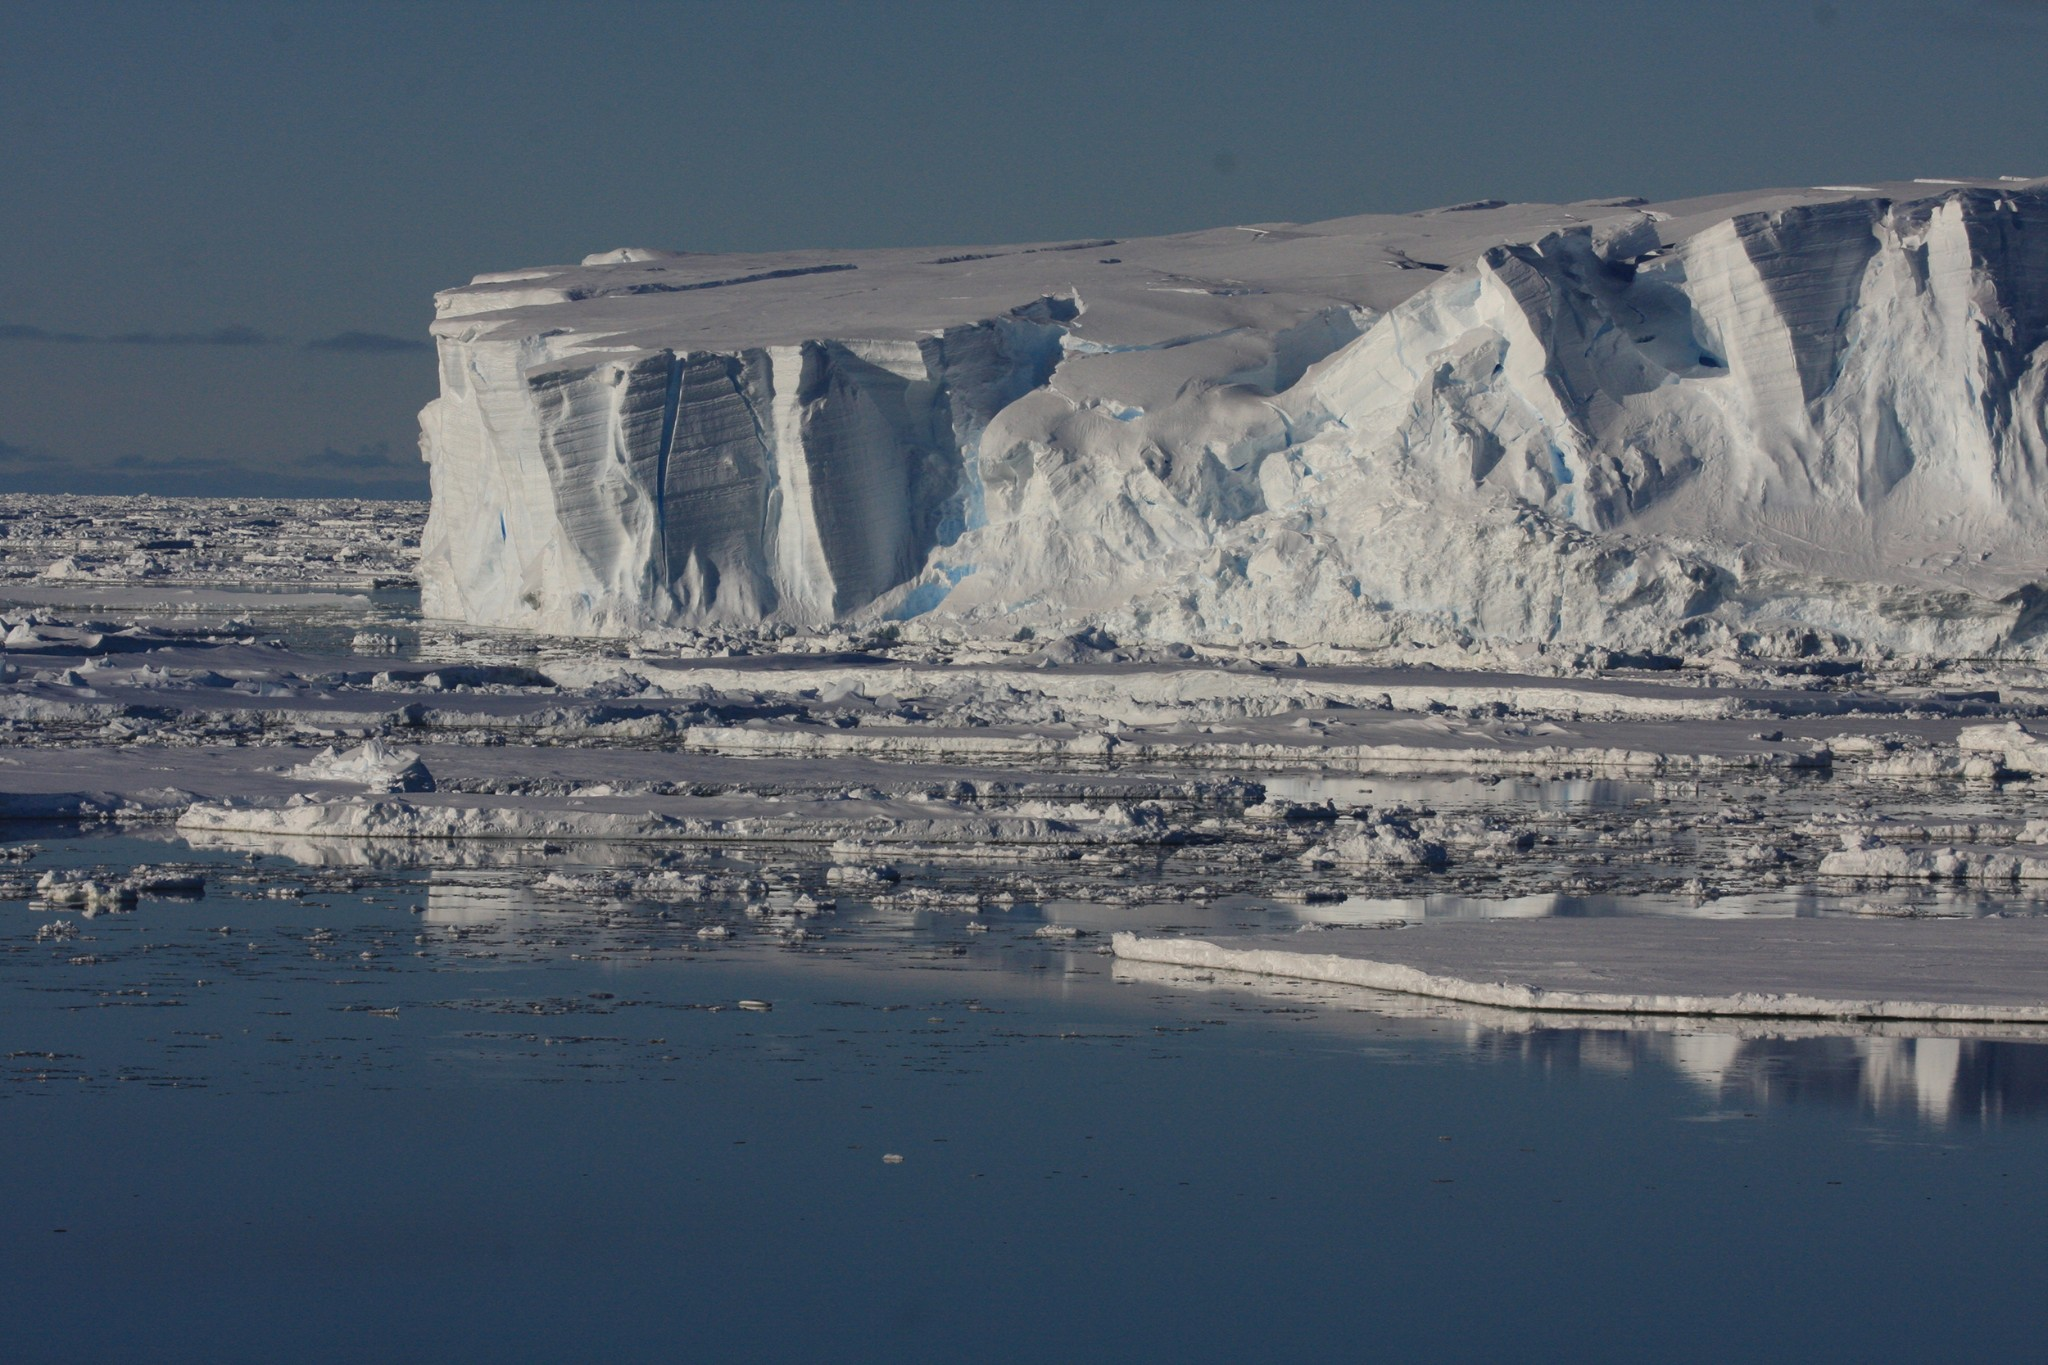 This Melting Glacier in Antarctica Could Raise Sea Levels By 11 Feet